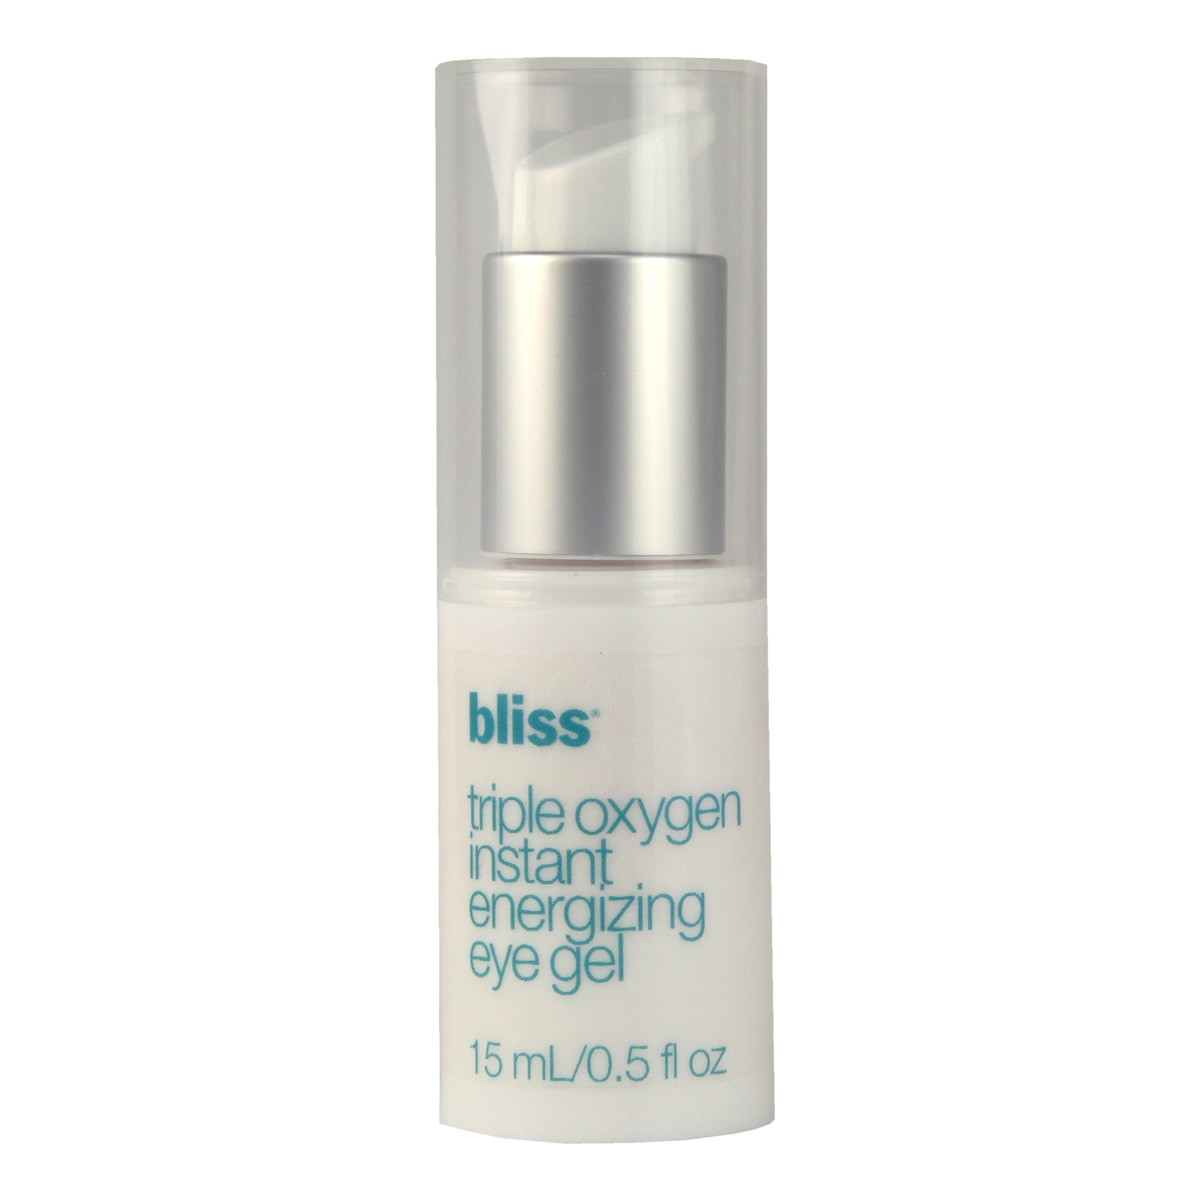 Bliss Triple Oxygen Instant Energizing Eye Gel